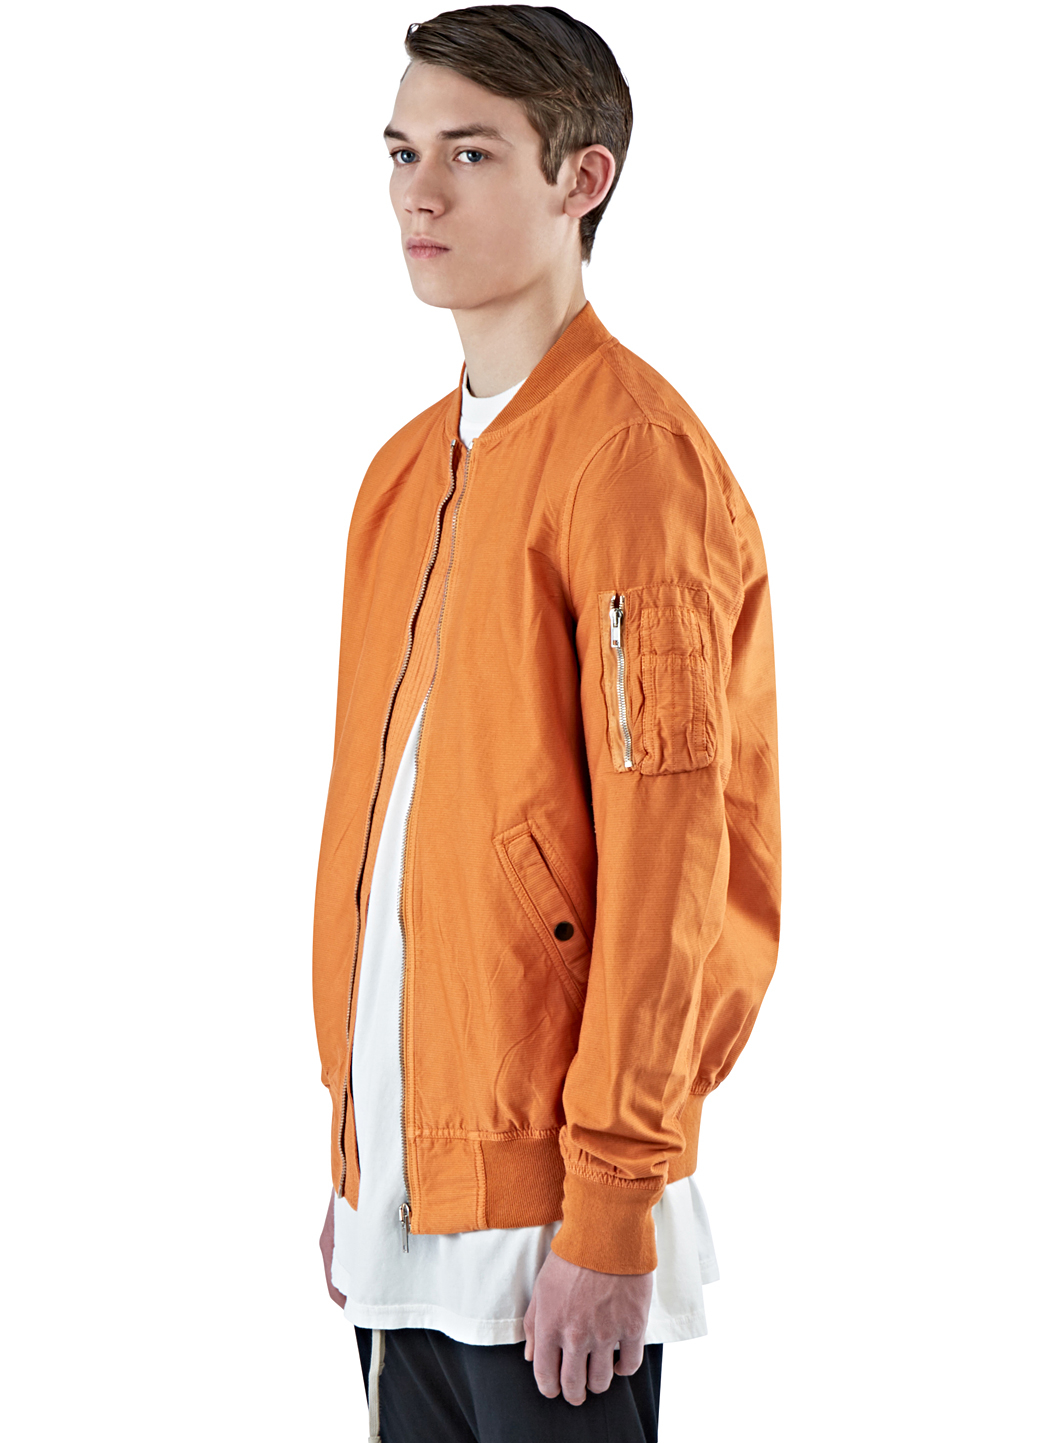 Orange Jackets For Men Jackets Review